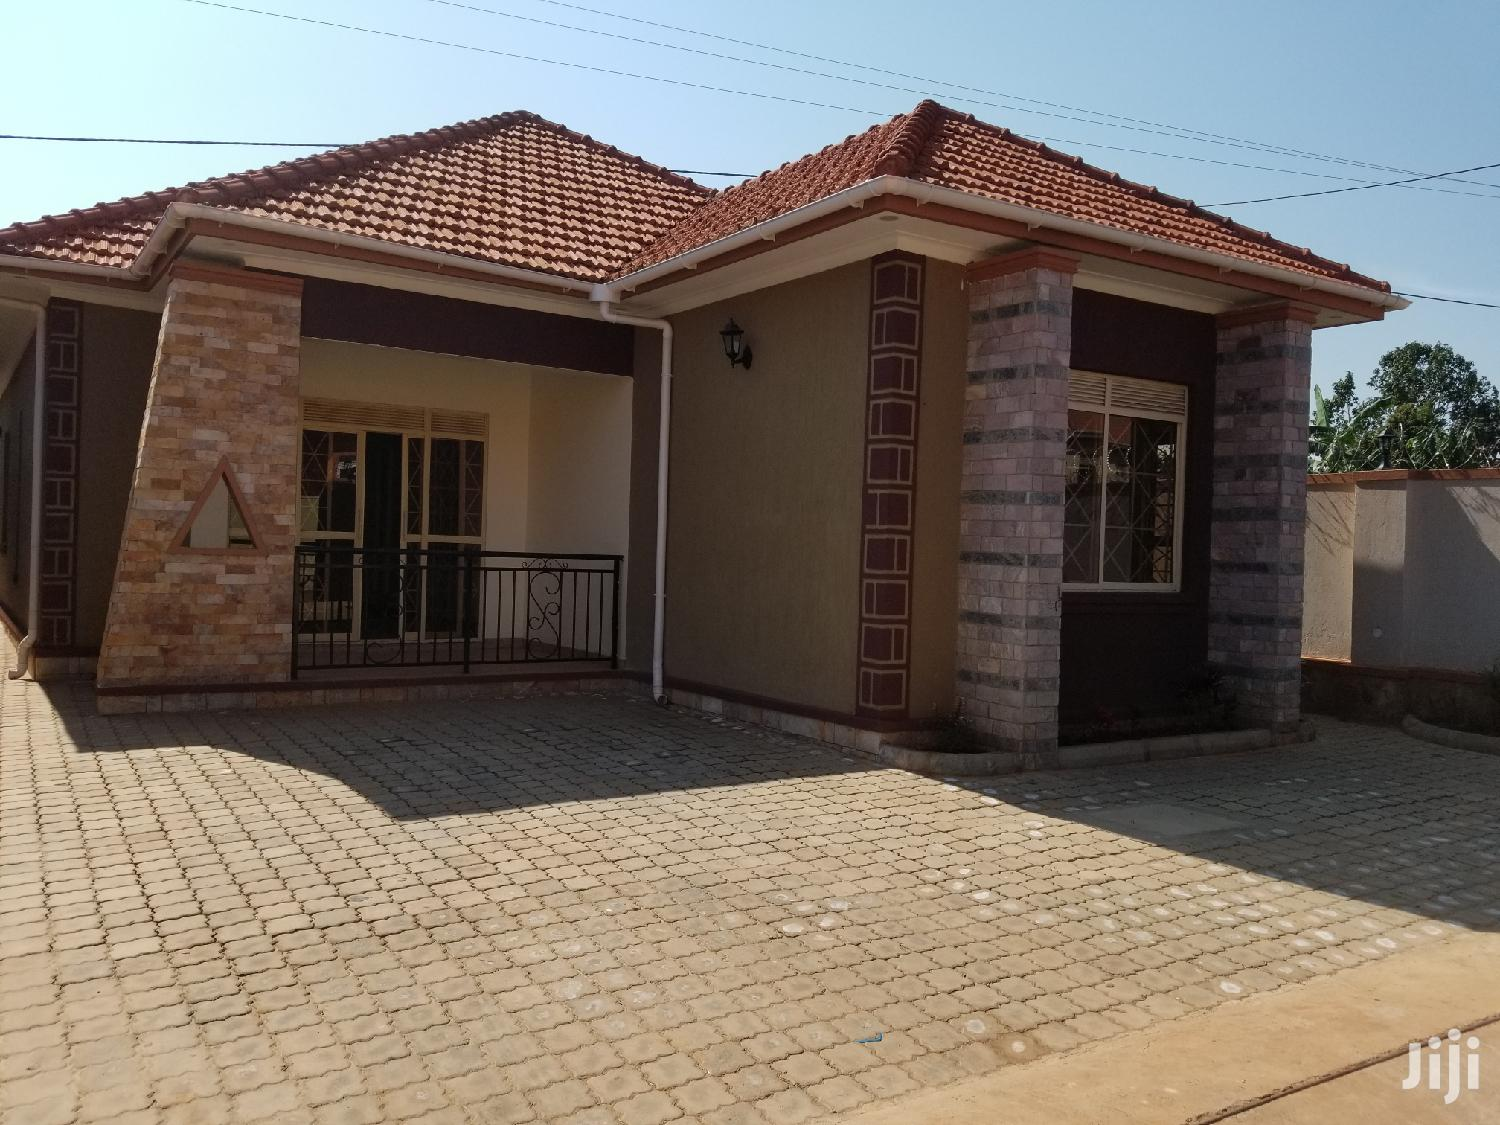 Four Bedroom House For Sale In Kira